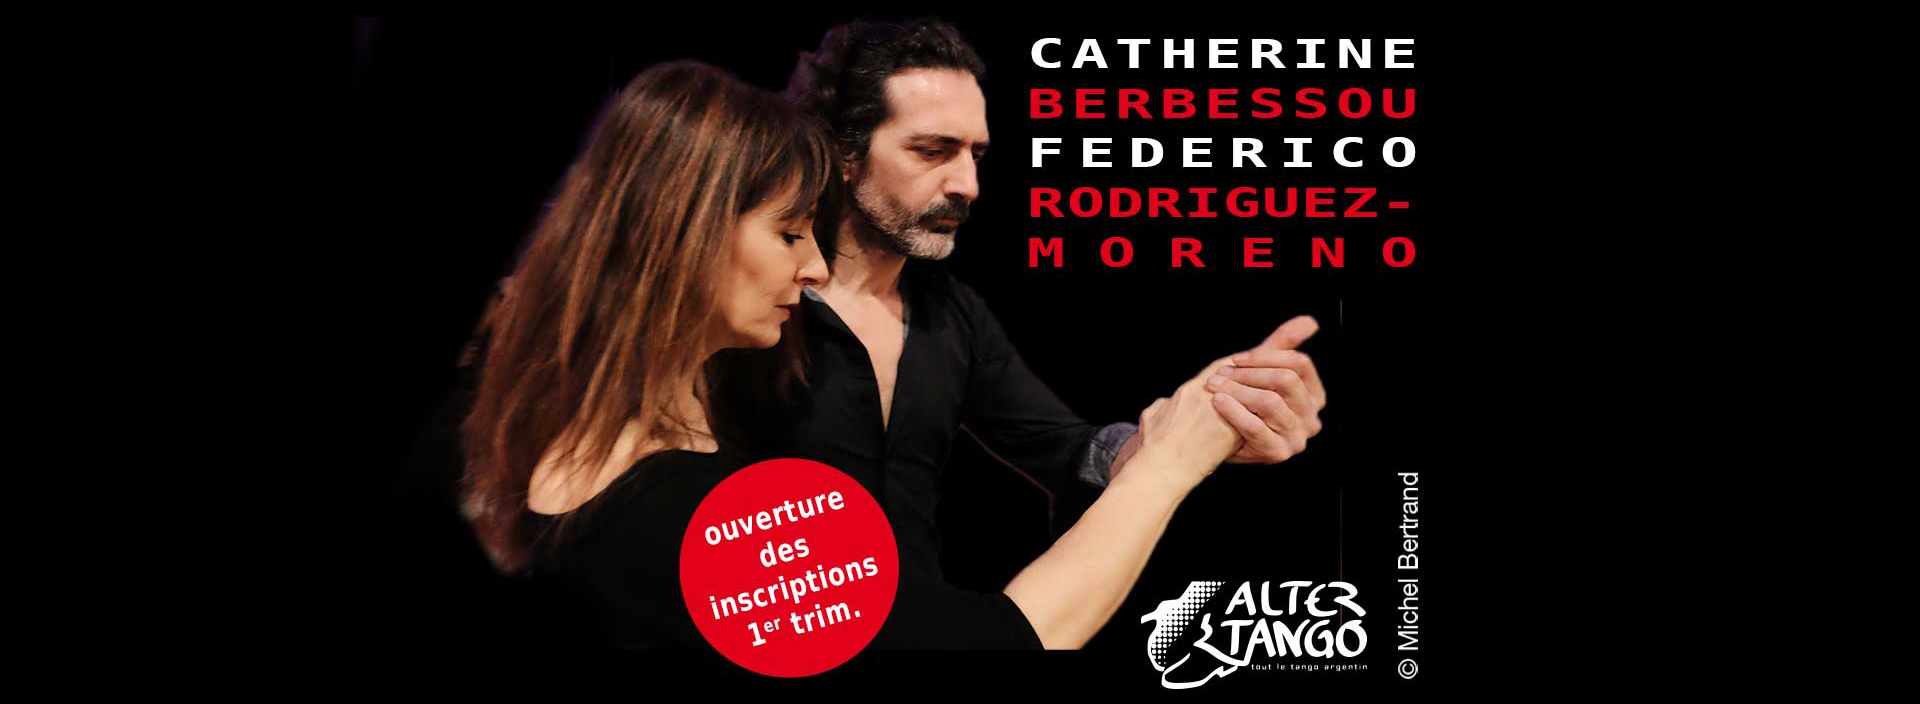 cours catherine barbessou federico rodriguez moreno altertango